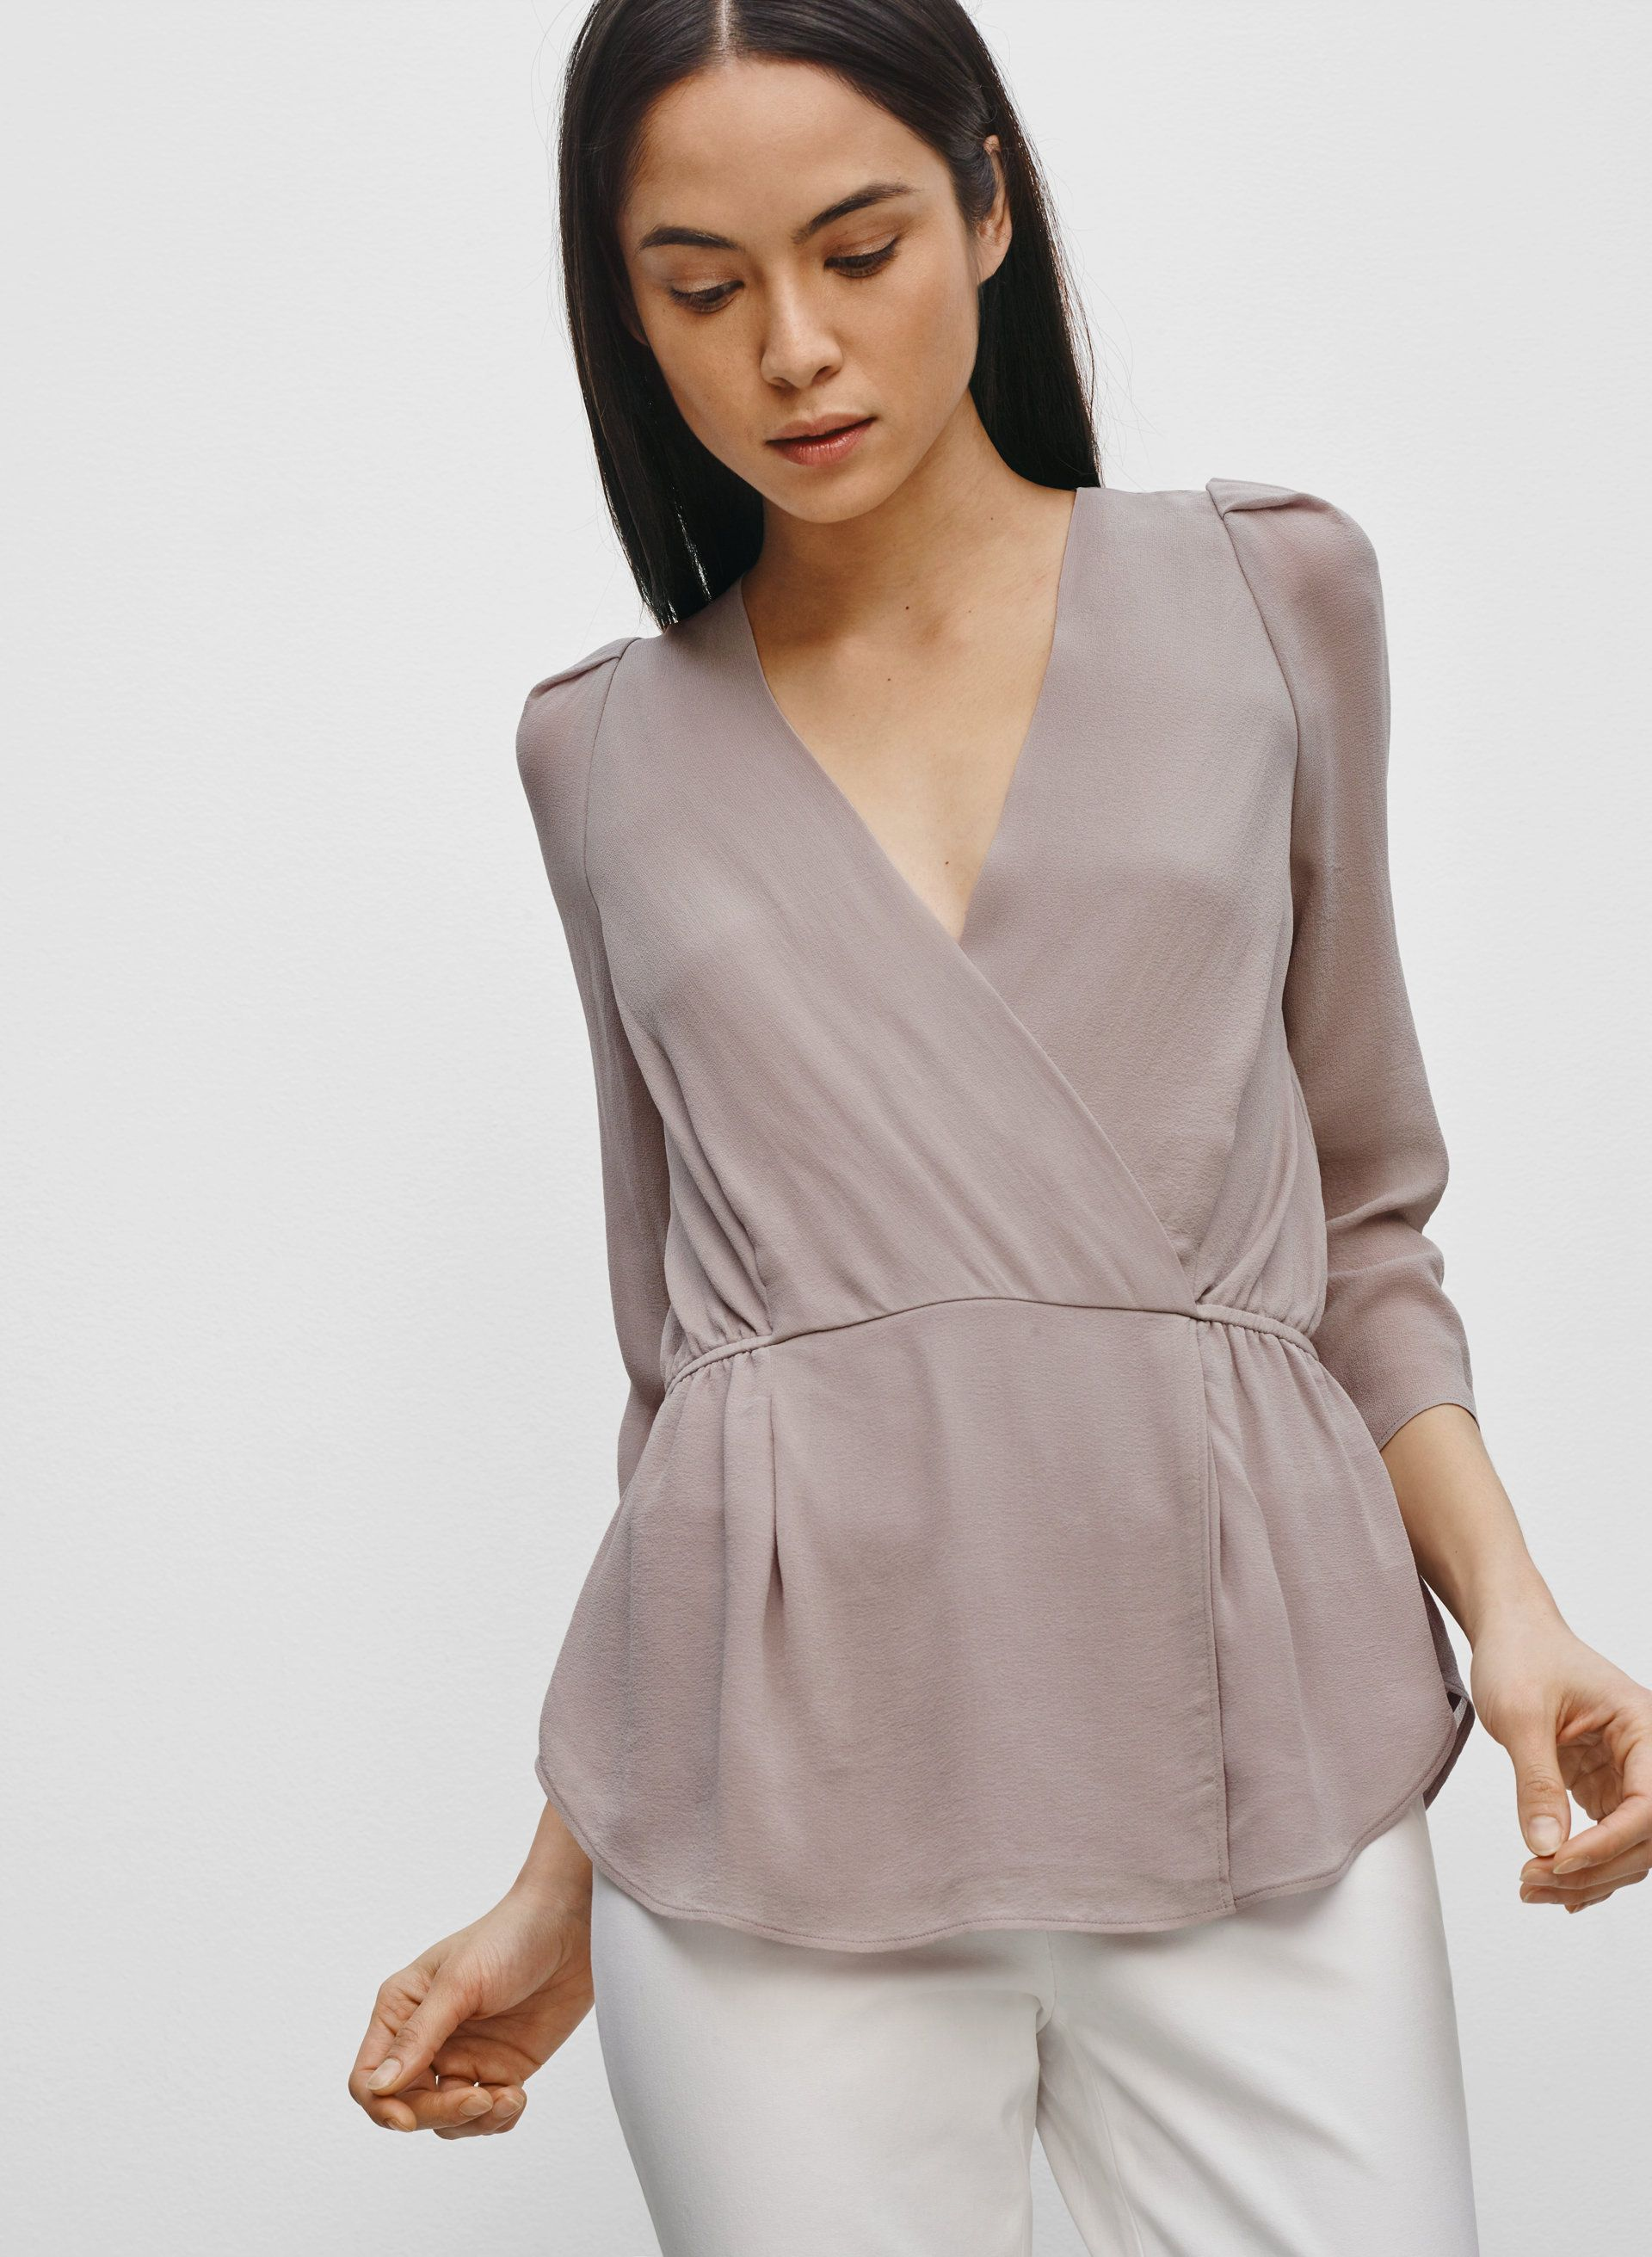 89df10cbfdfd93 Babaton ALEXANDER BLOUSE, $115, A toned-down peplum with minimalist  sophistication | Aritzia